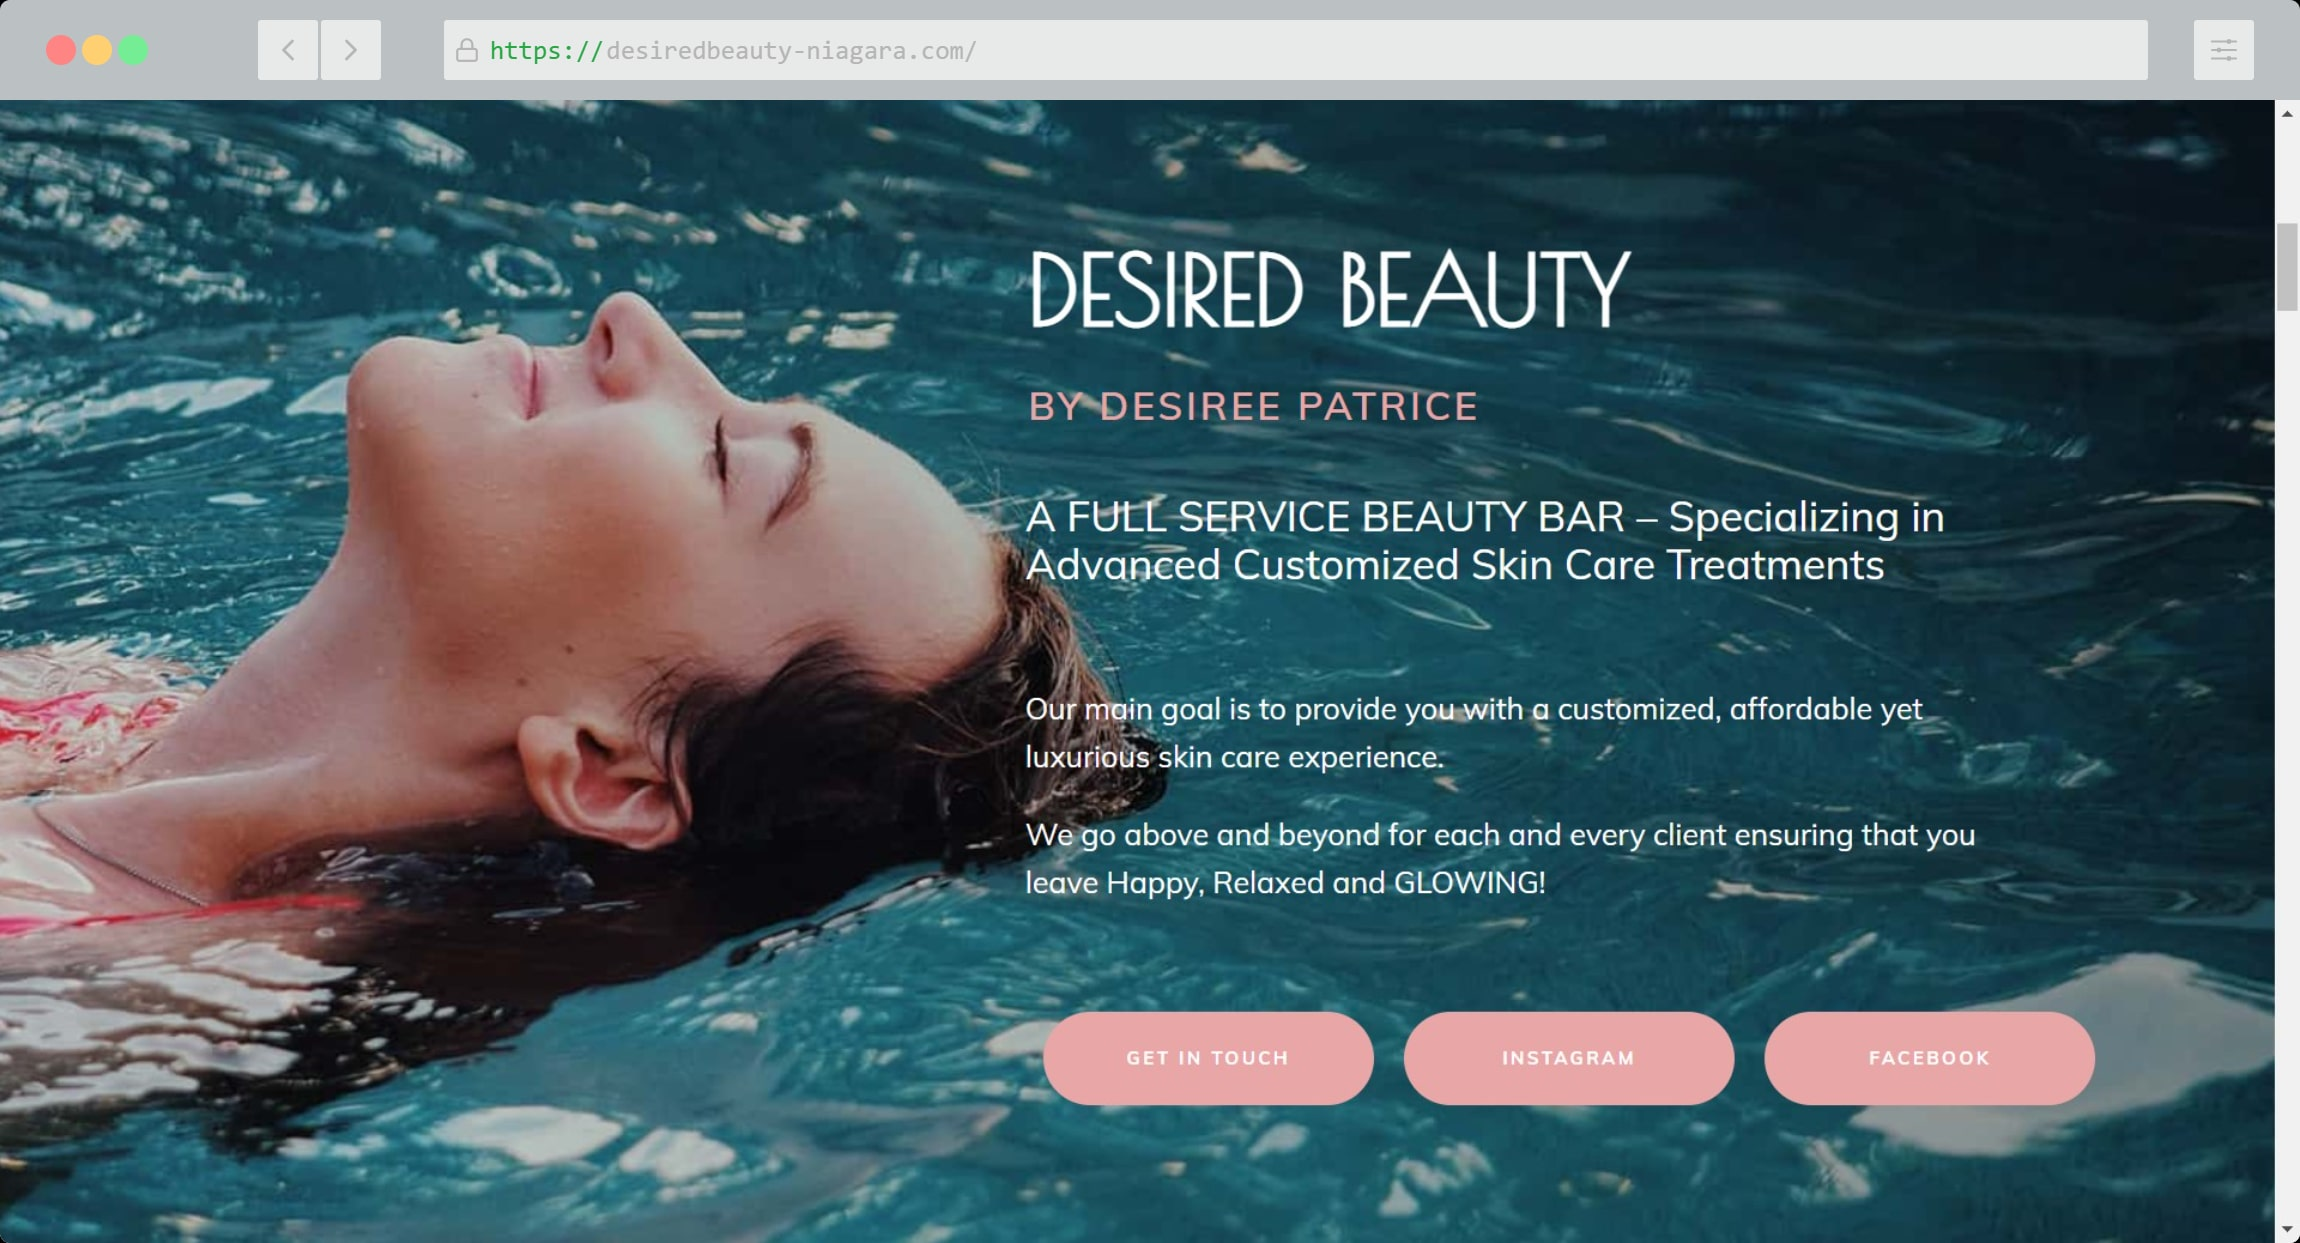 Desired Beauty Niagara Website min